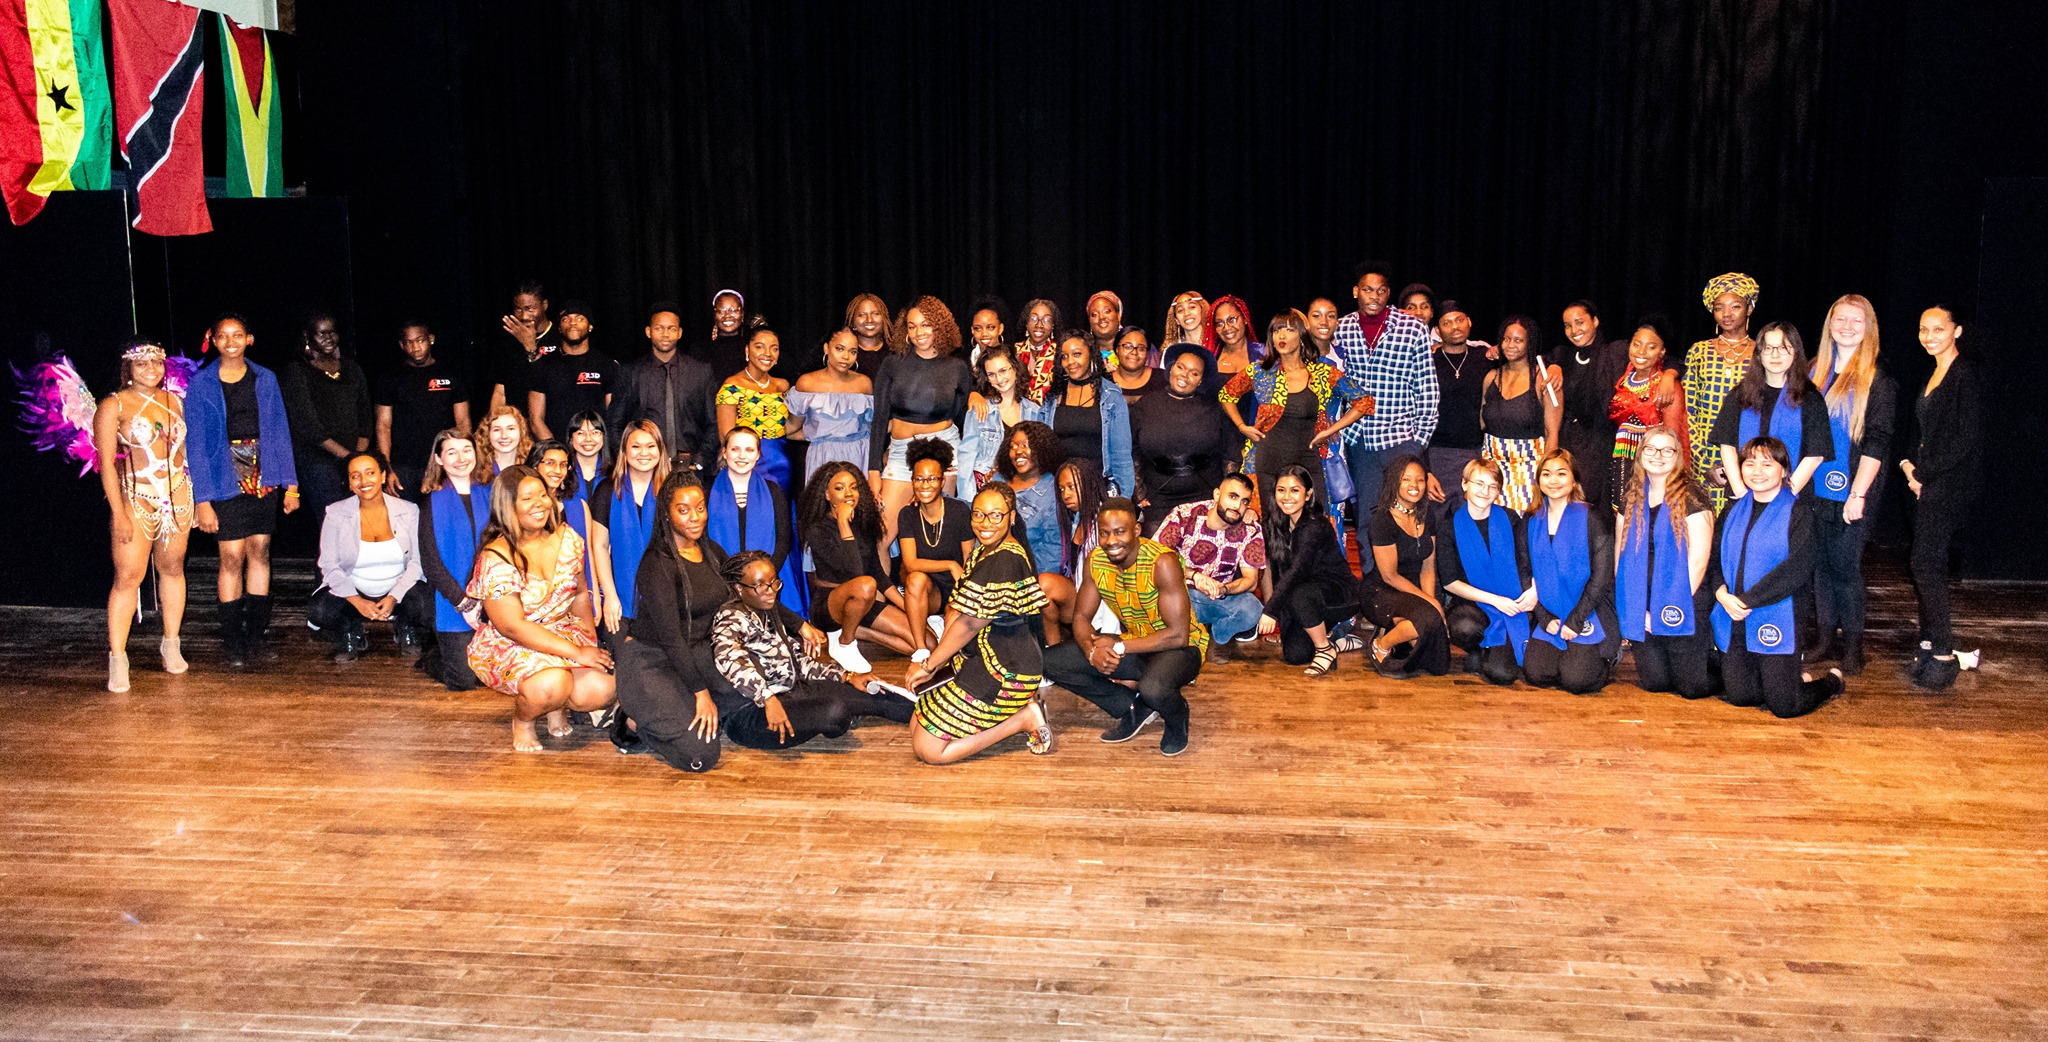 How did TACSU celebrate Black History Month?